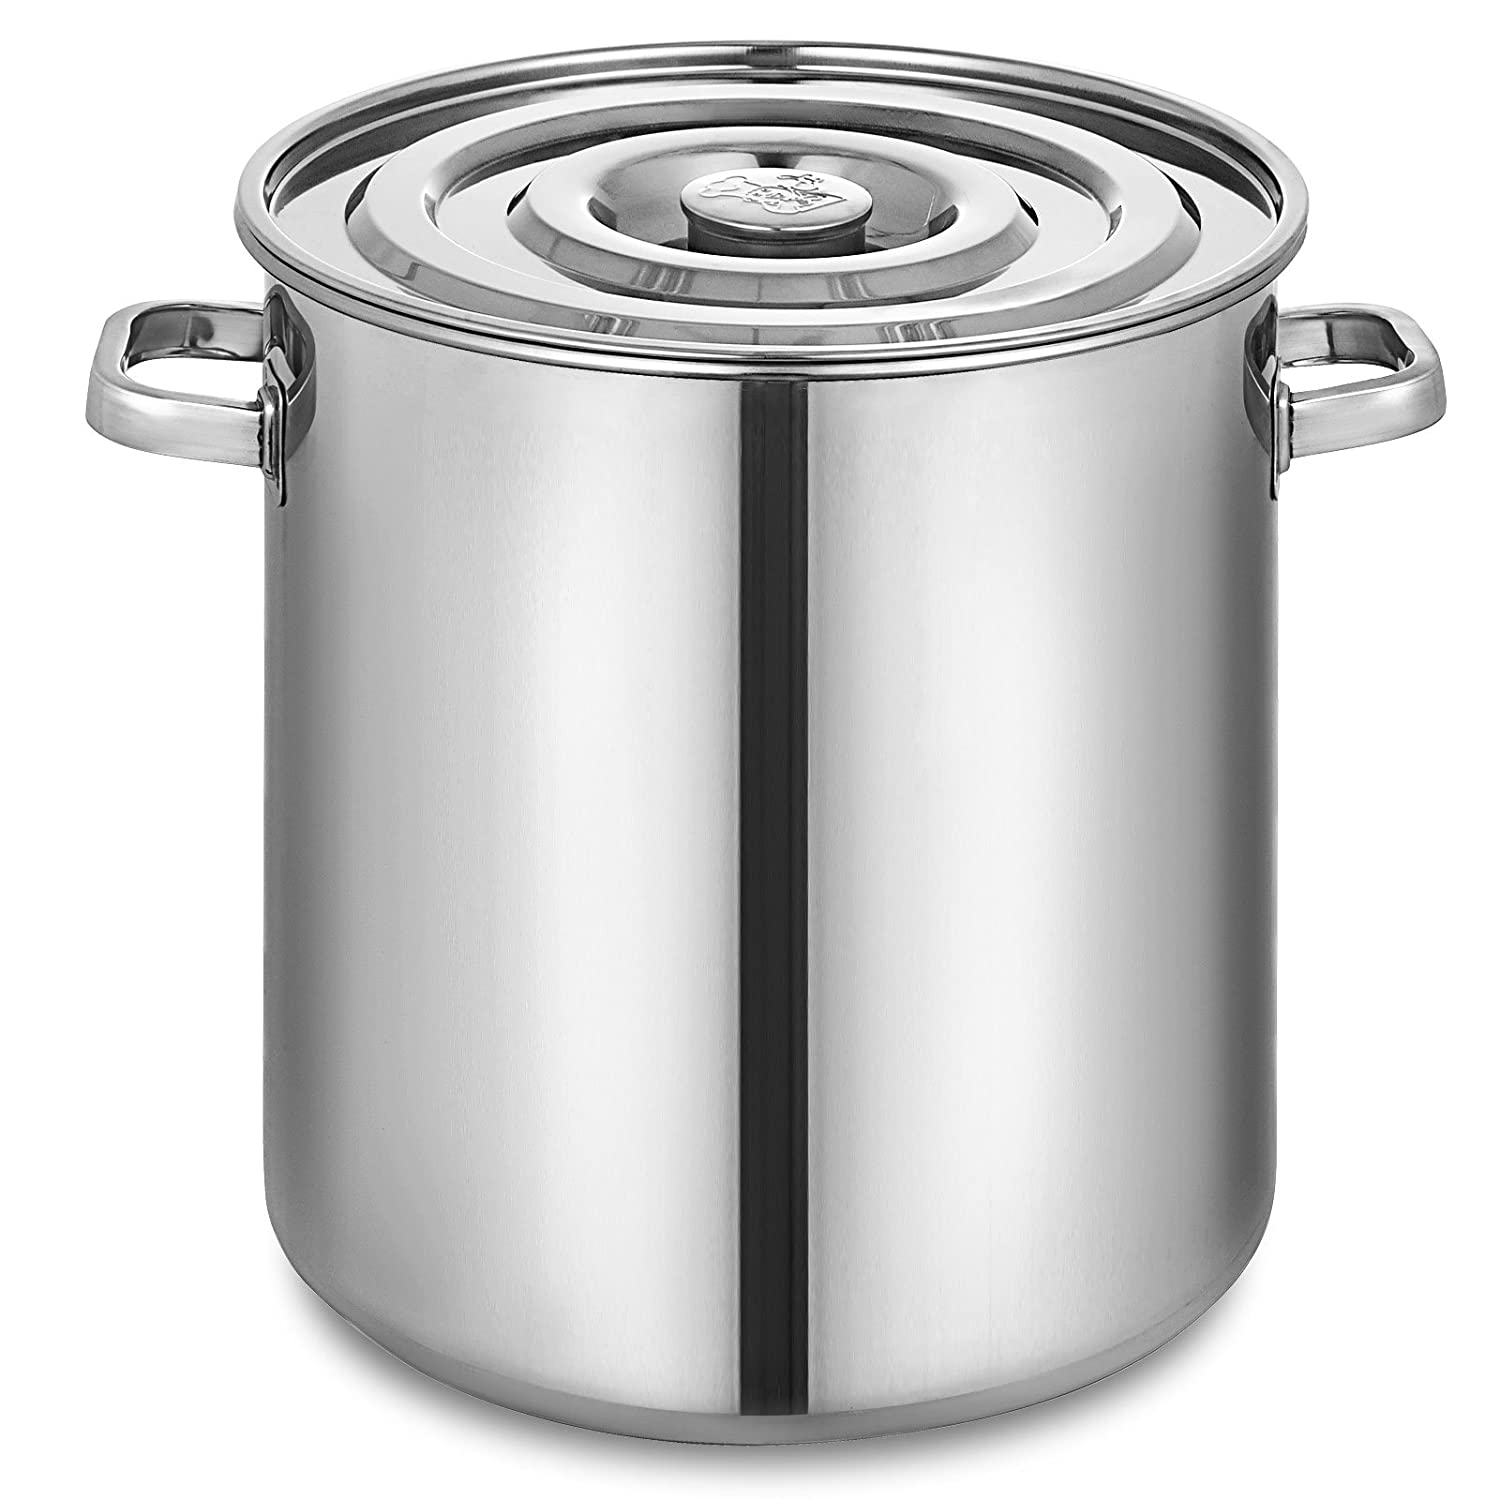 Mophorn Kettle Stockpot Stainless Steel 18.5Gal with Lid for Home Brew and Stock Pot Cookware, 74 Quart, With